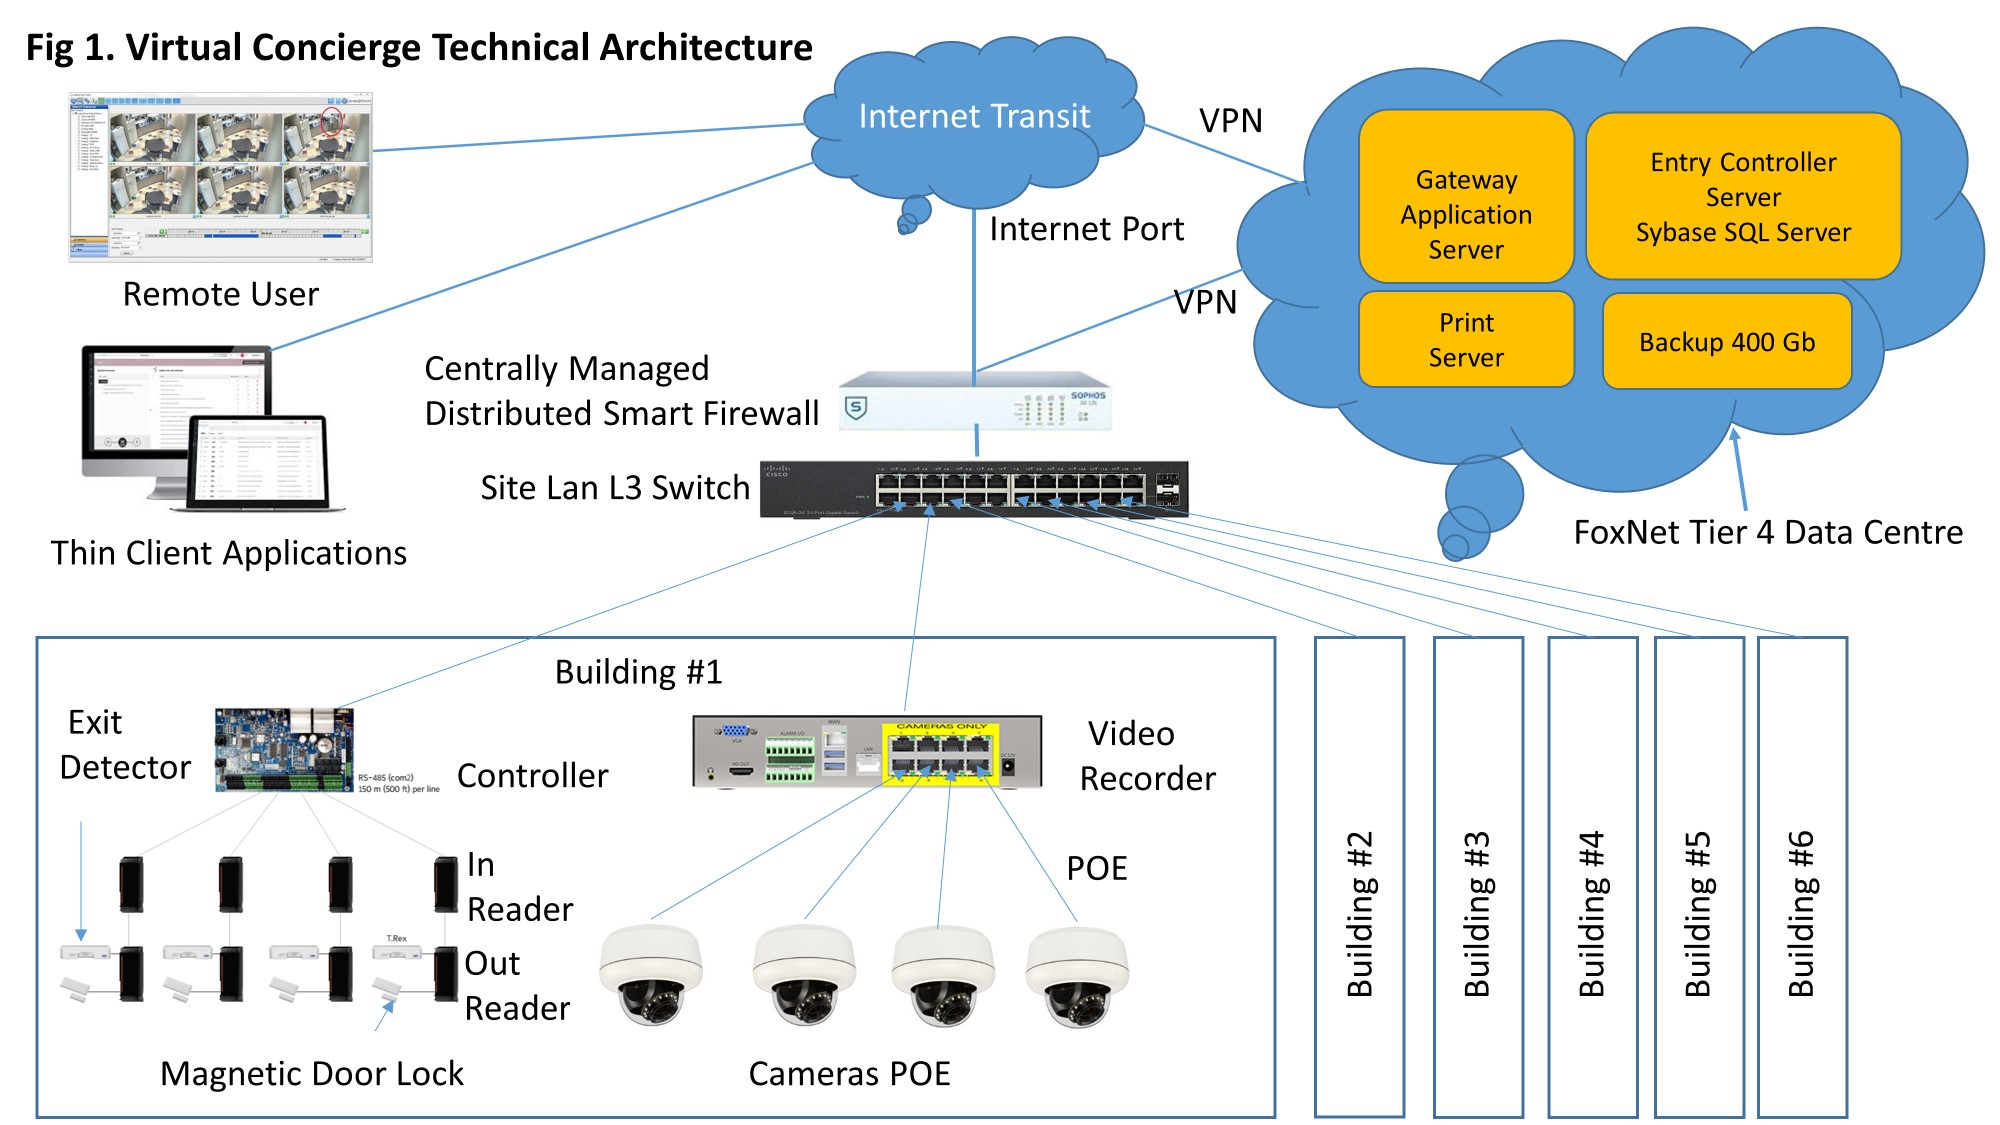 Virtual Concierge Technical Architecture outlines the critical components of the overall architecture